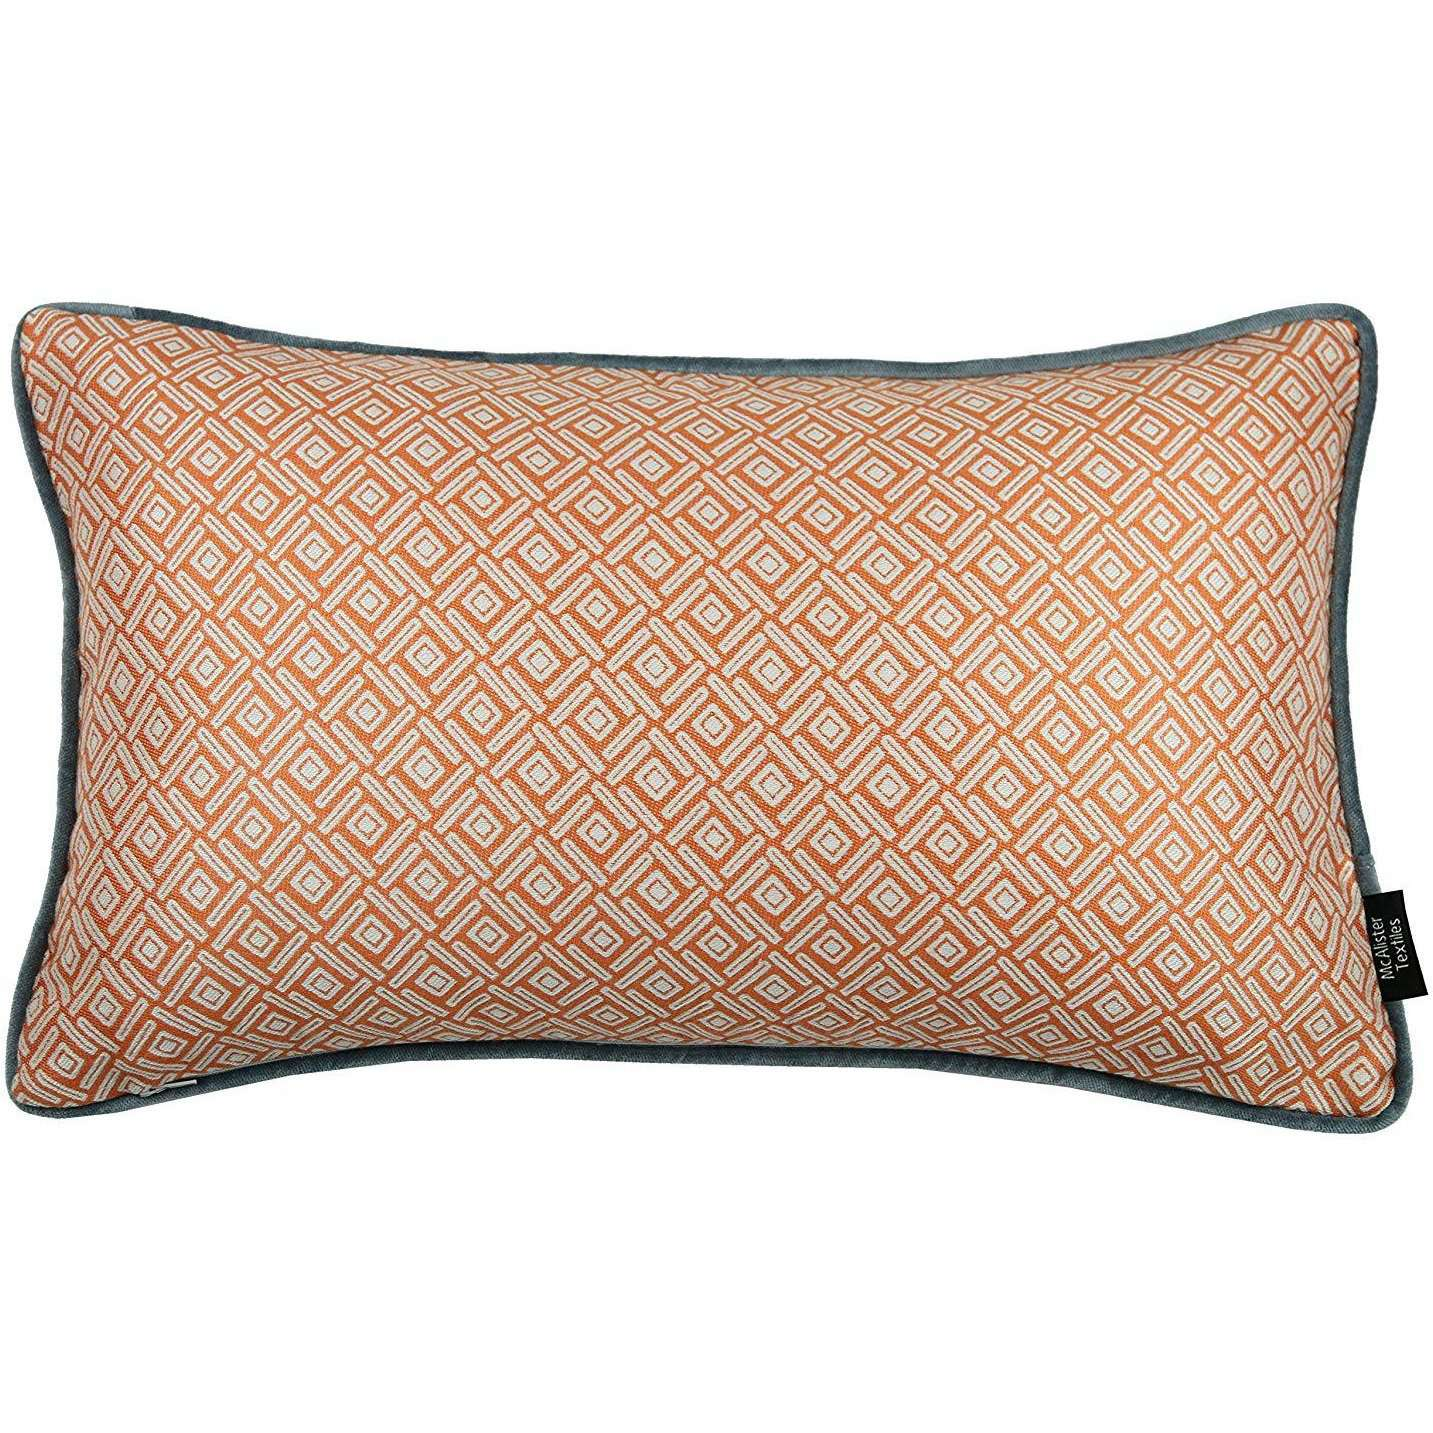 McAlister Textiles Elva Geometric Burnt Orange Cushion Cushions and Covers Cover Only 50cm x 30cm